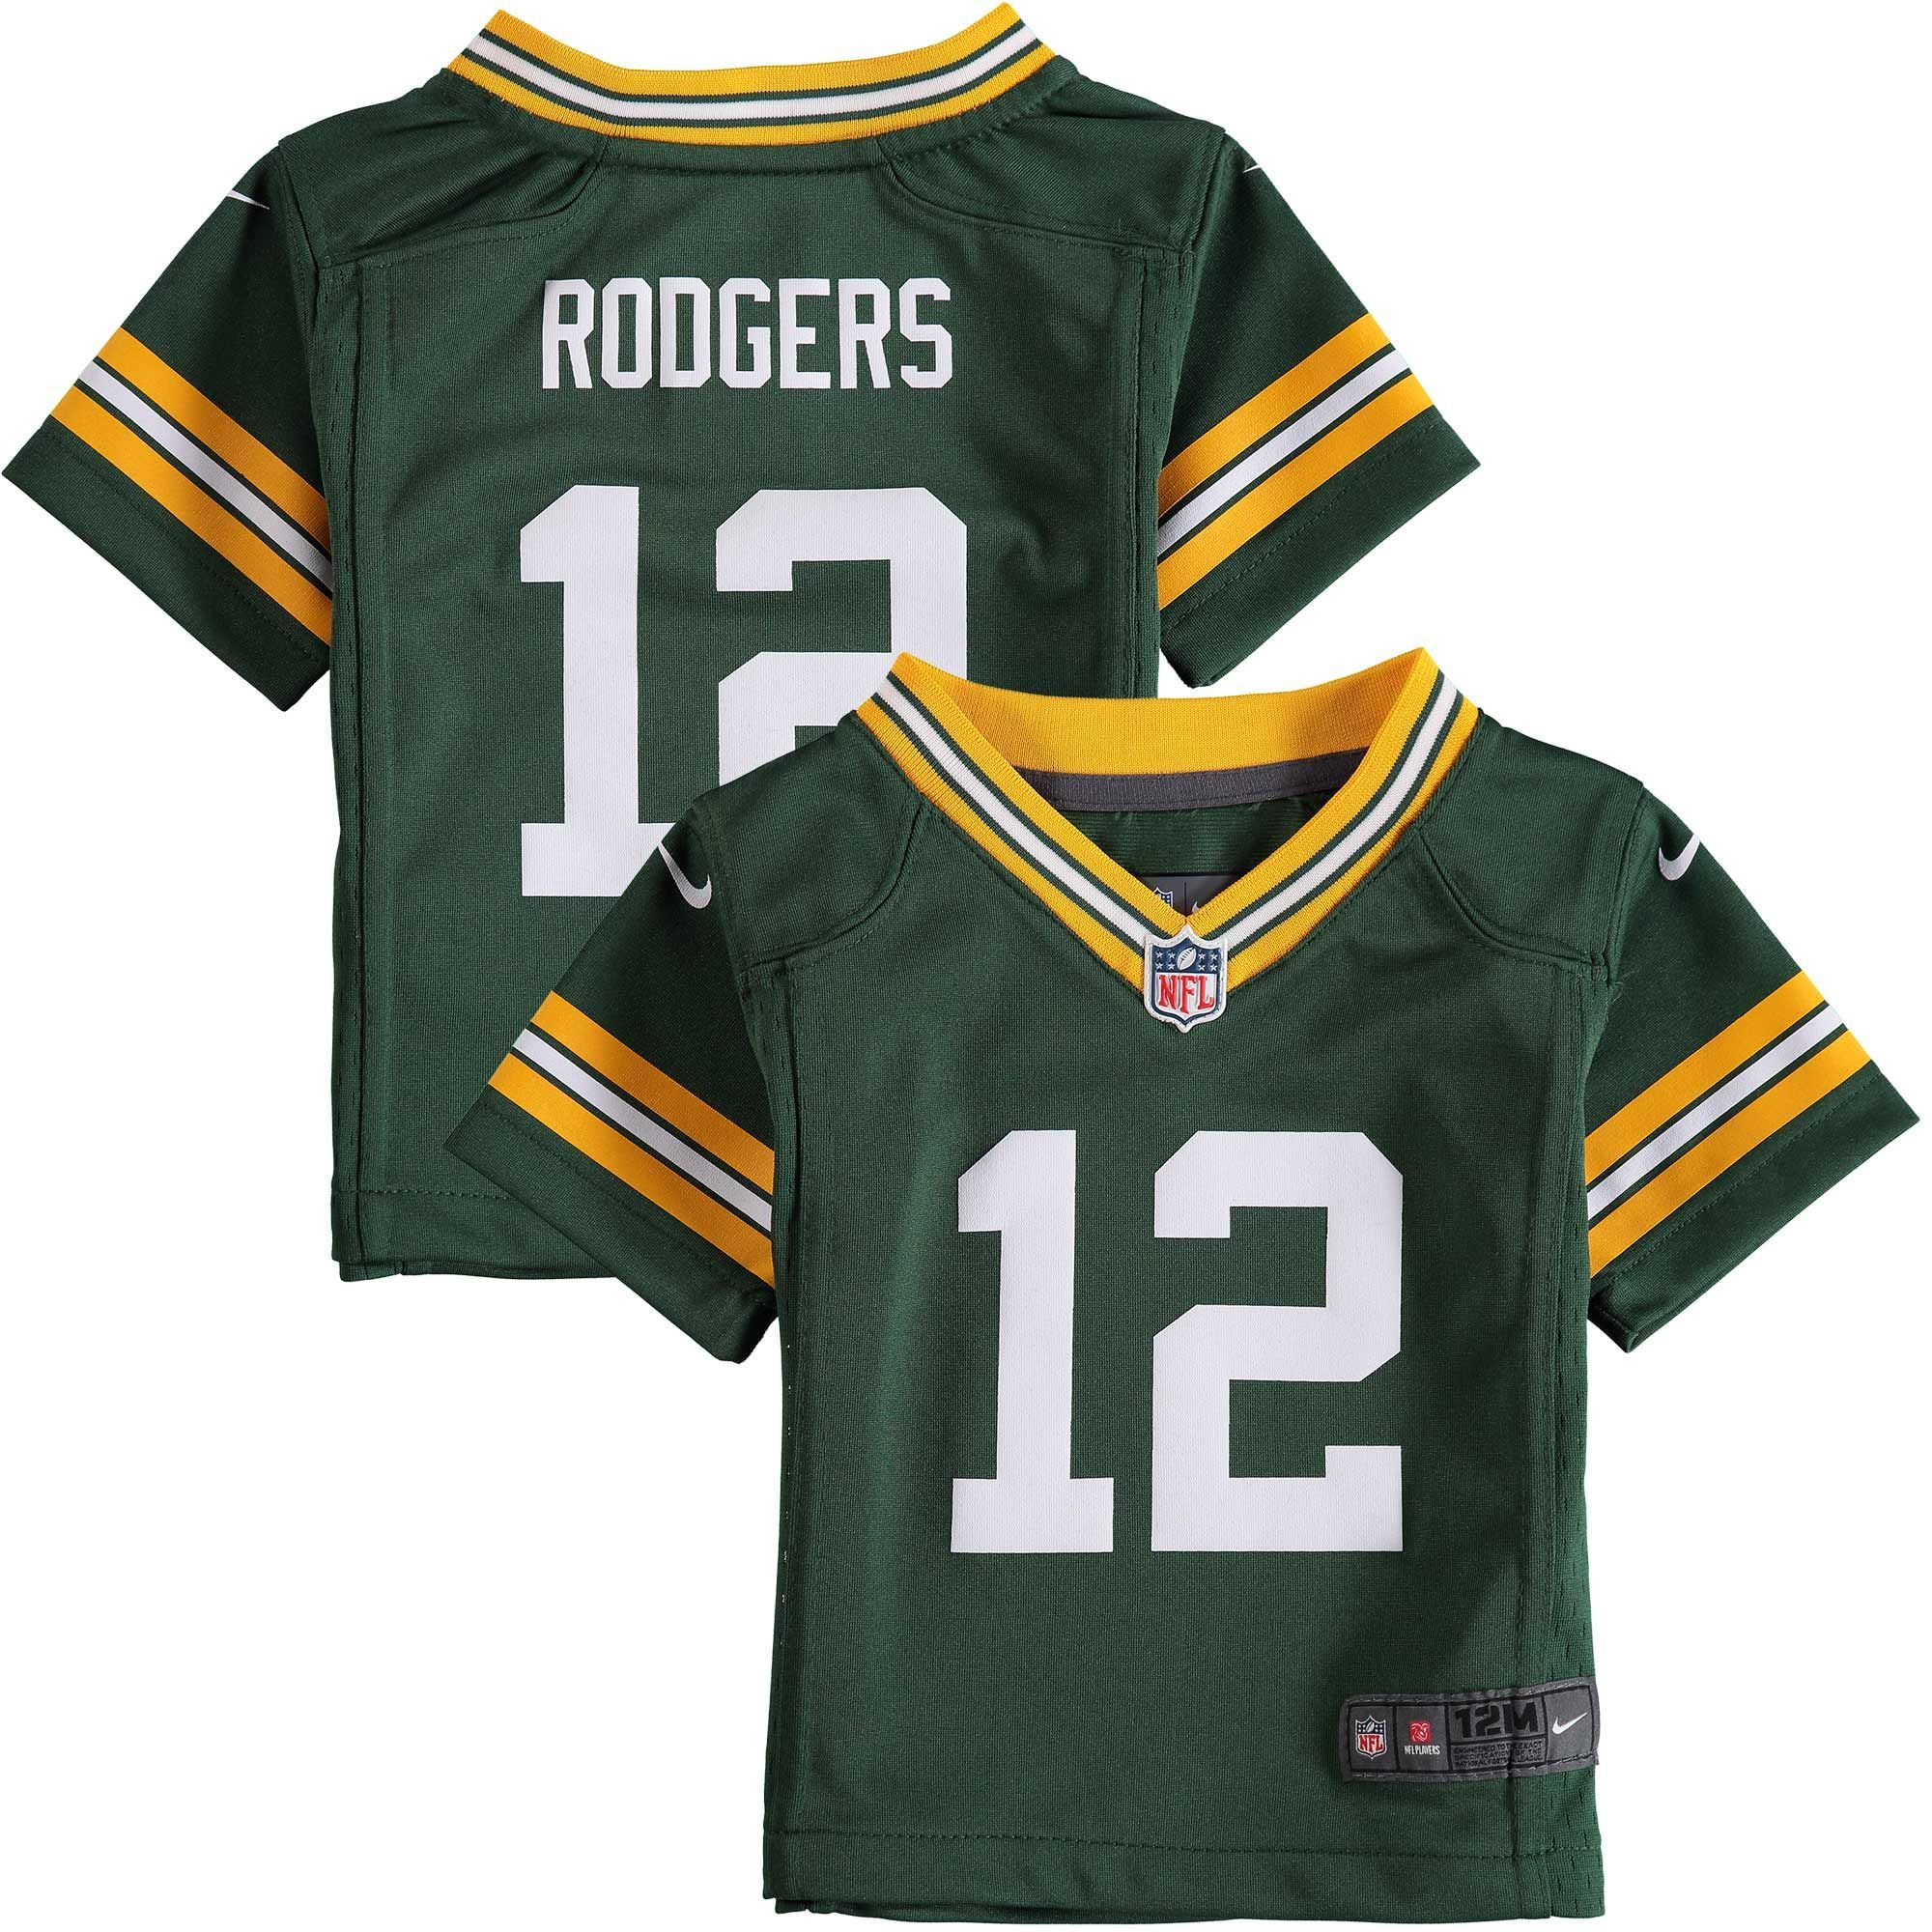 Aaron Rodgers Green Bay Packers Nike Infant Team Color Game Jersey Green Aaron Green Bay Packers Green Bay Packers Aaron Rodgers Green Bay Packers Jerseys